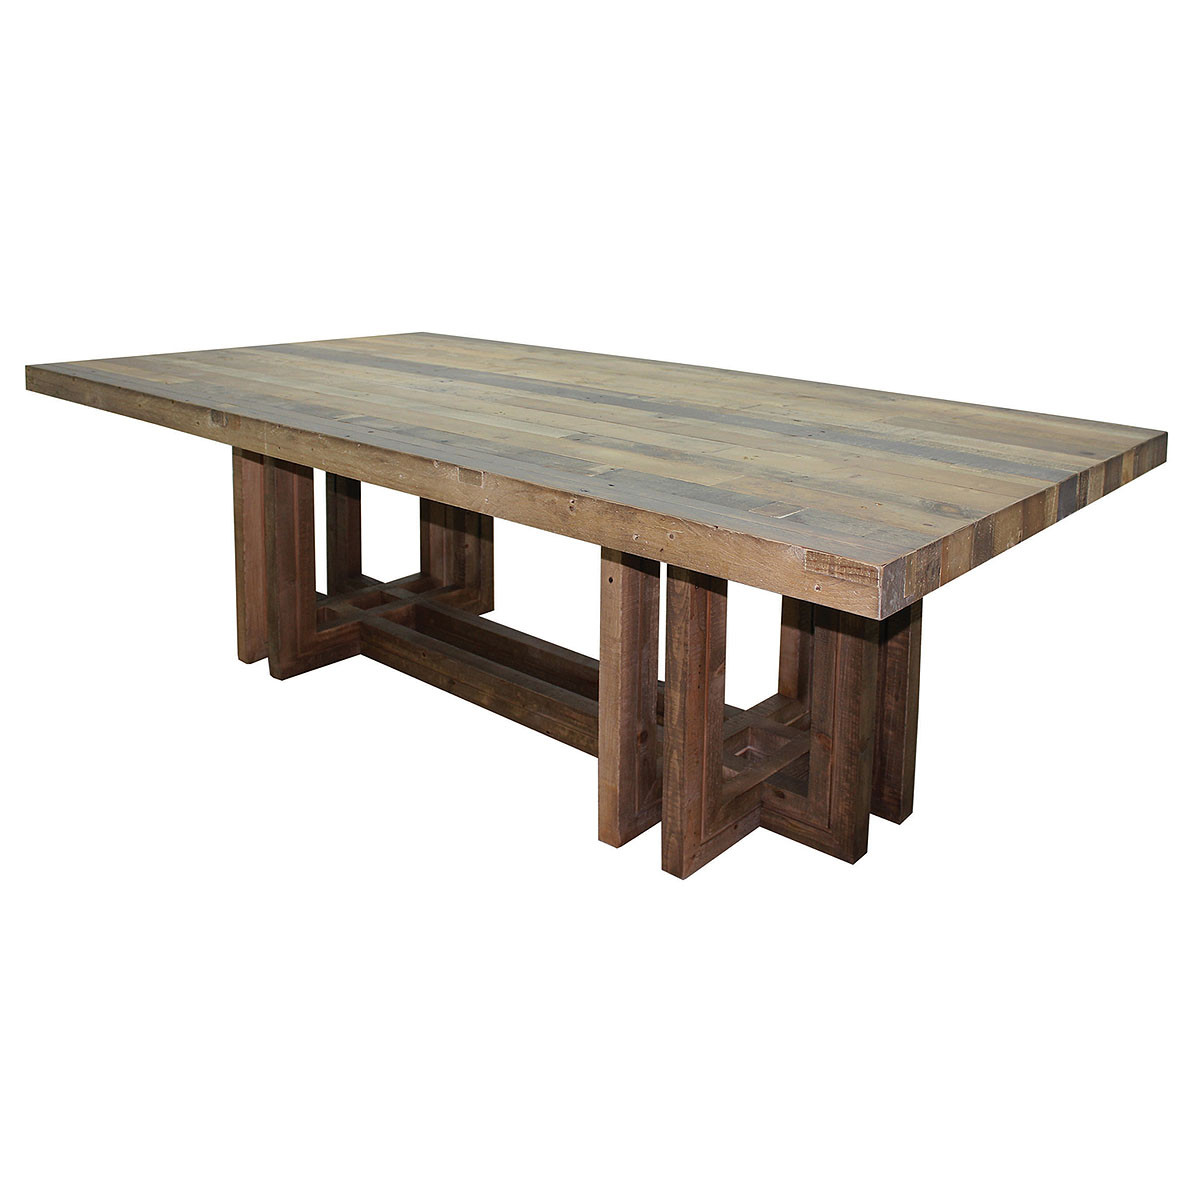 Modern Reclaimed Wood Furniture #21: Angora Dining Table 95u0026quot;